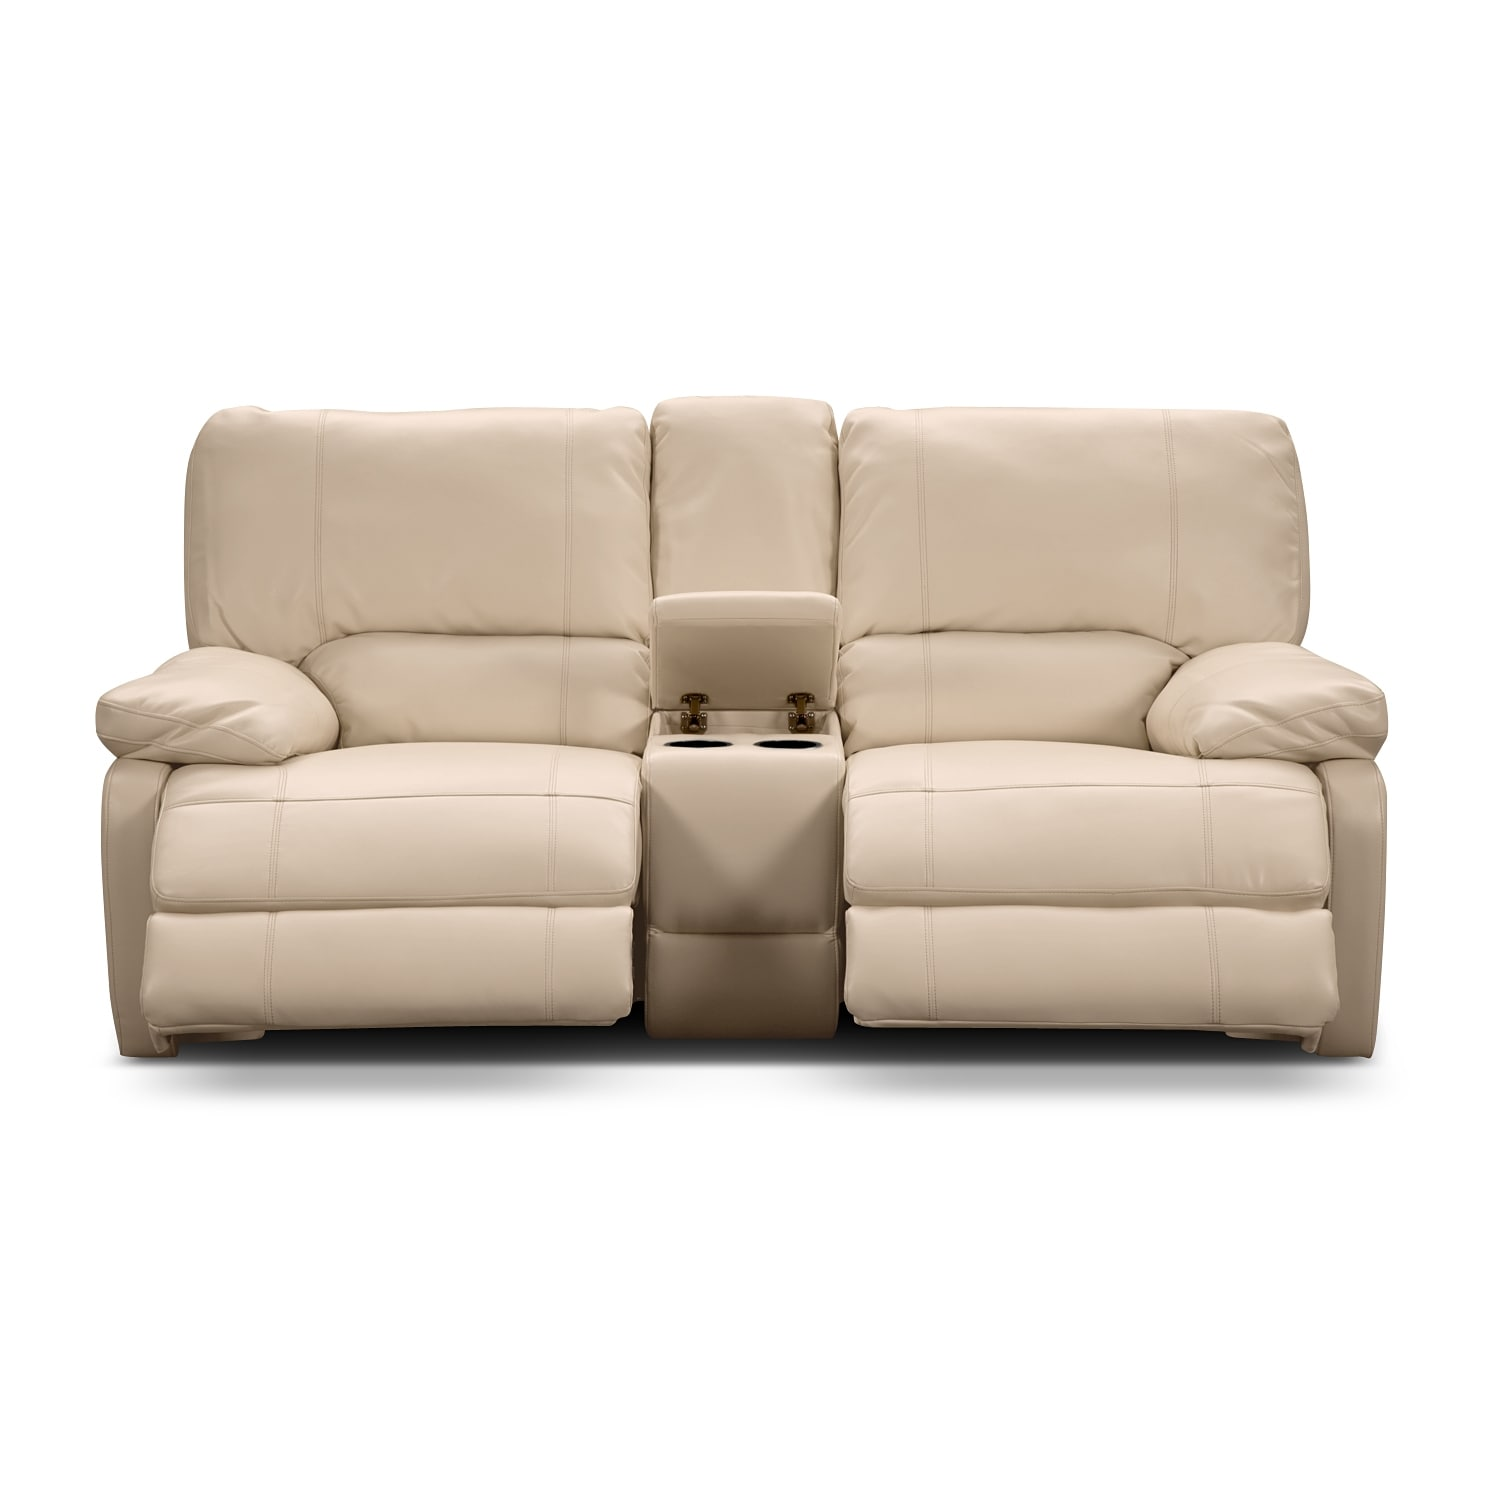 Coronado leather power reclining loveseat value city furniture Leather reclining loveseat